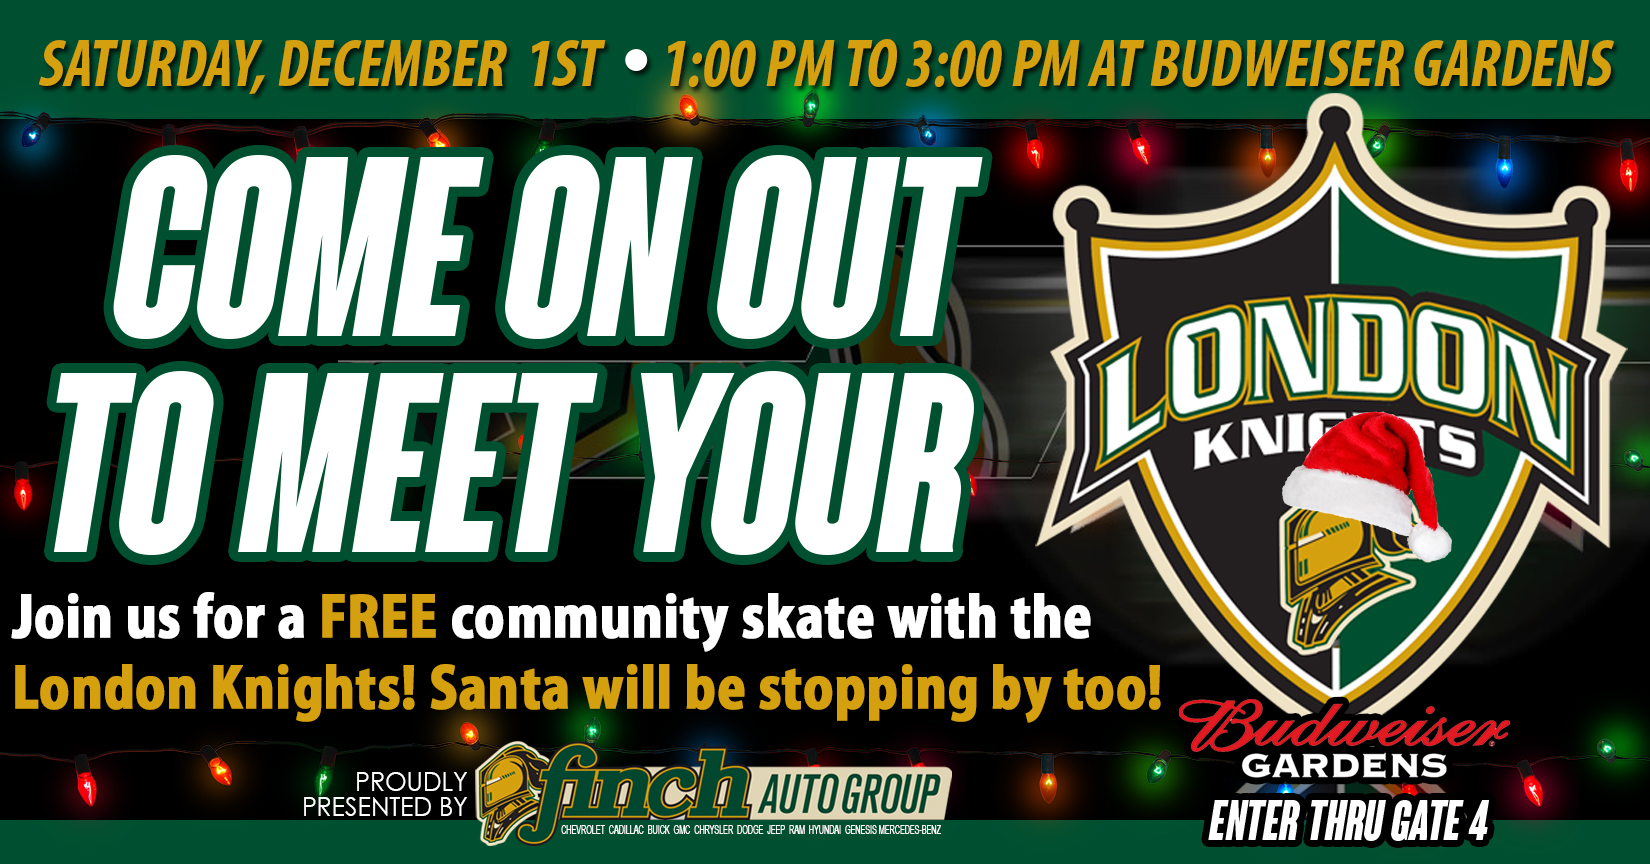 Join us for a FREE community skate with the London Knights + take pictures with Santa!